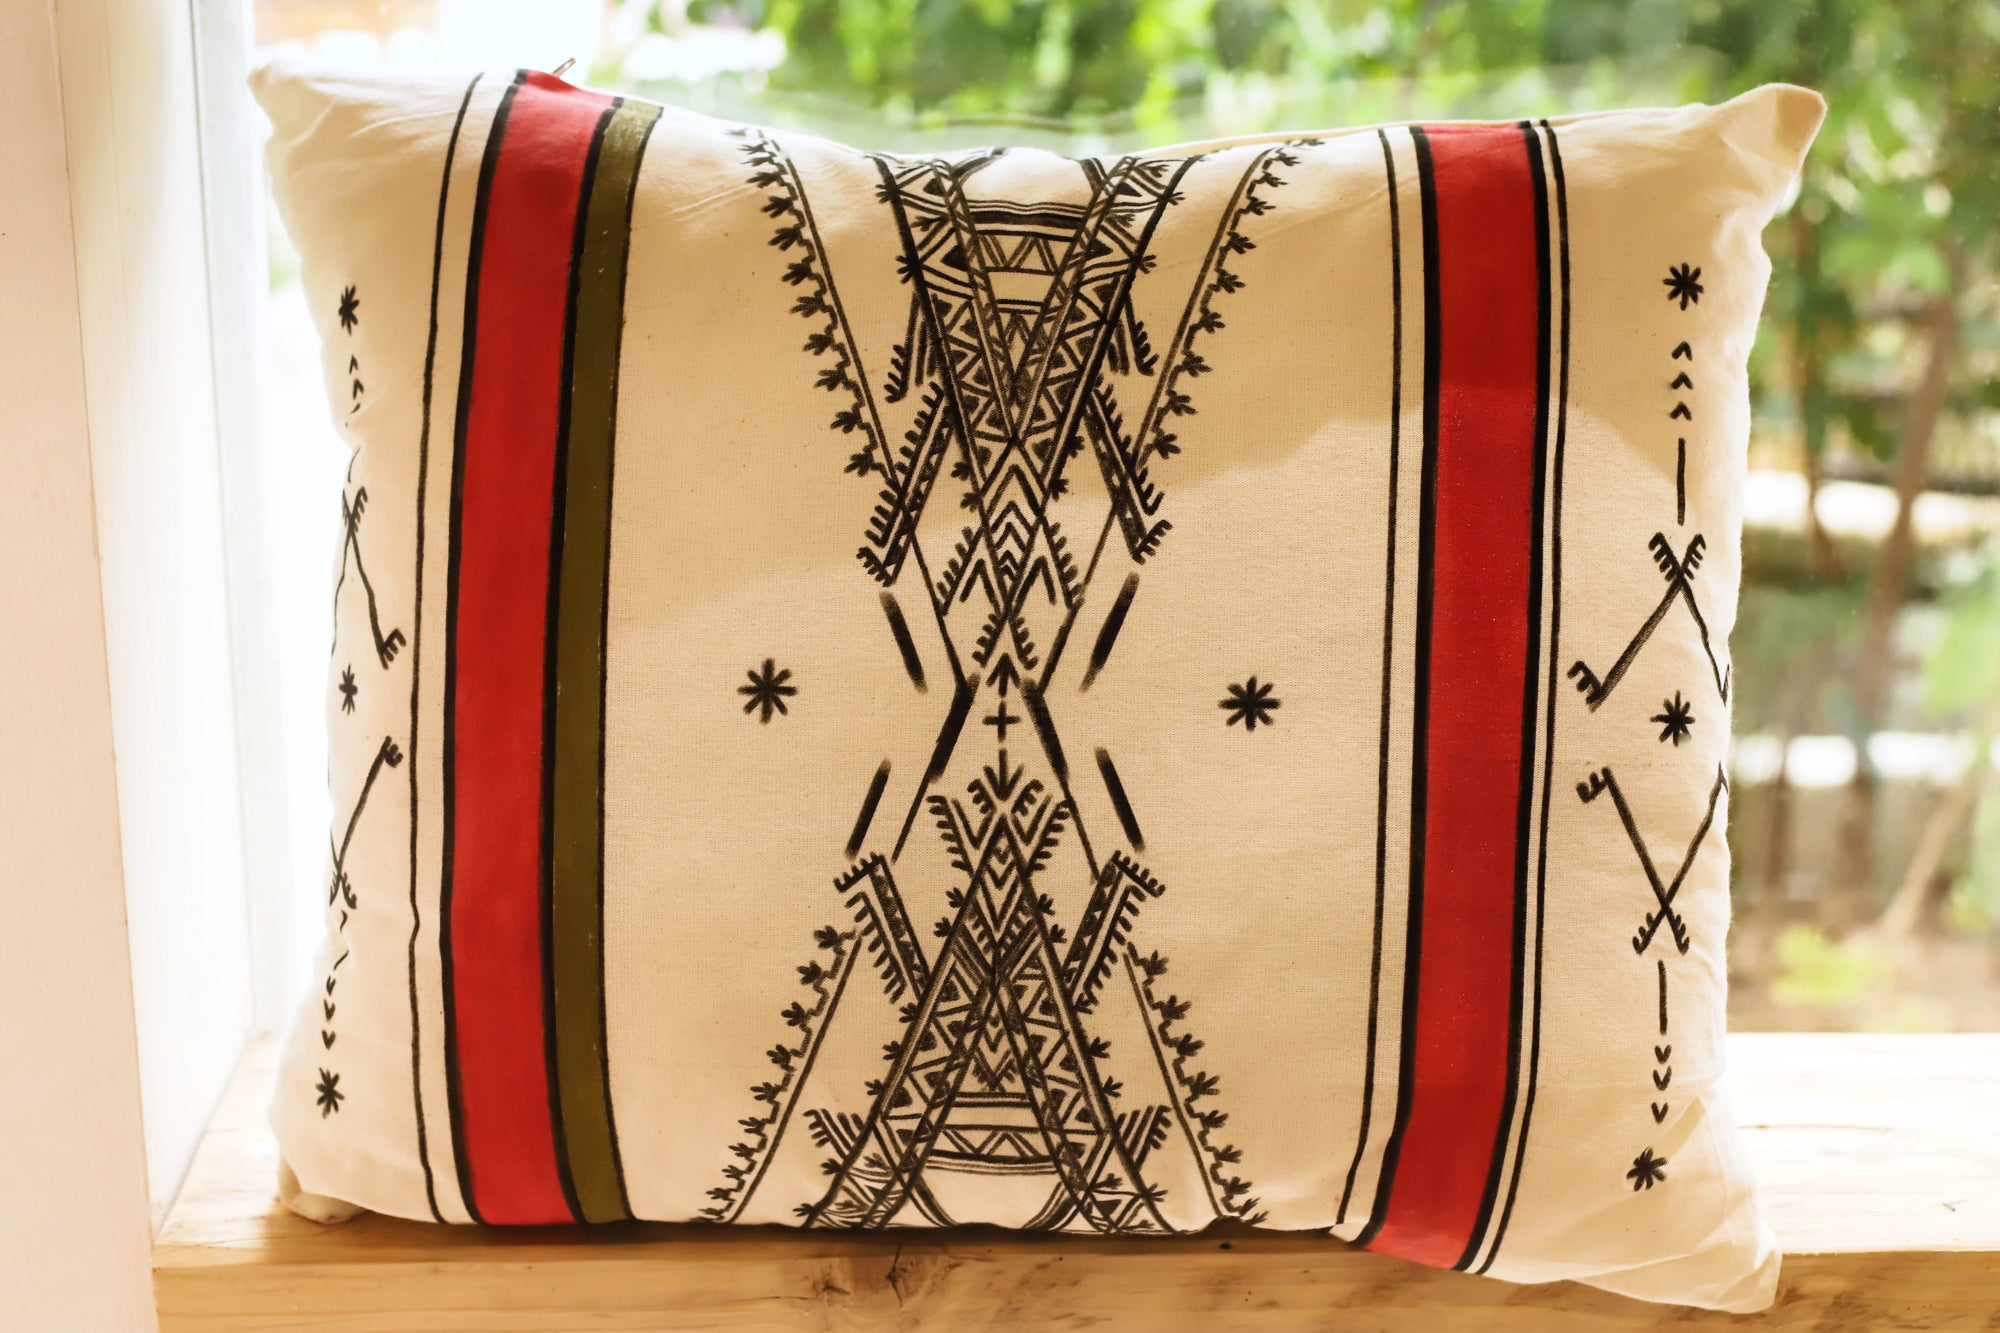 BERBER TRIANGLE - Handpainted Pillow cover by Fatimazahra Rkhami